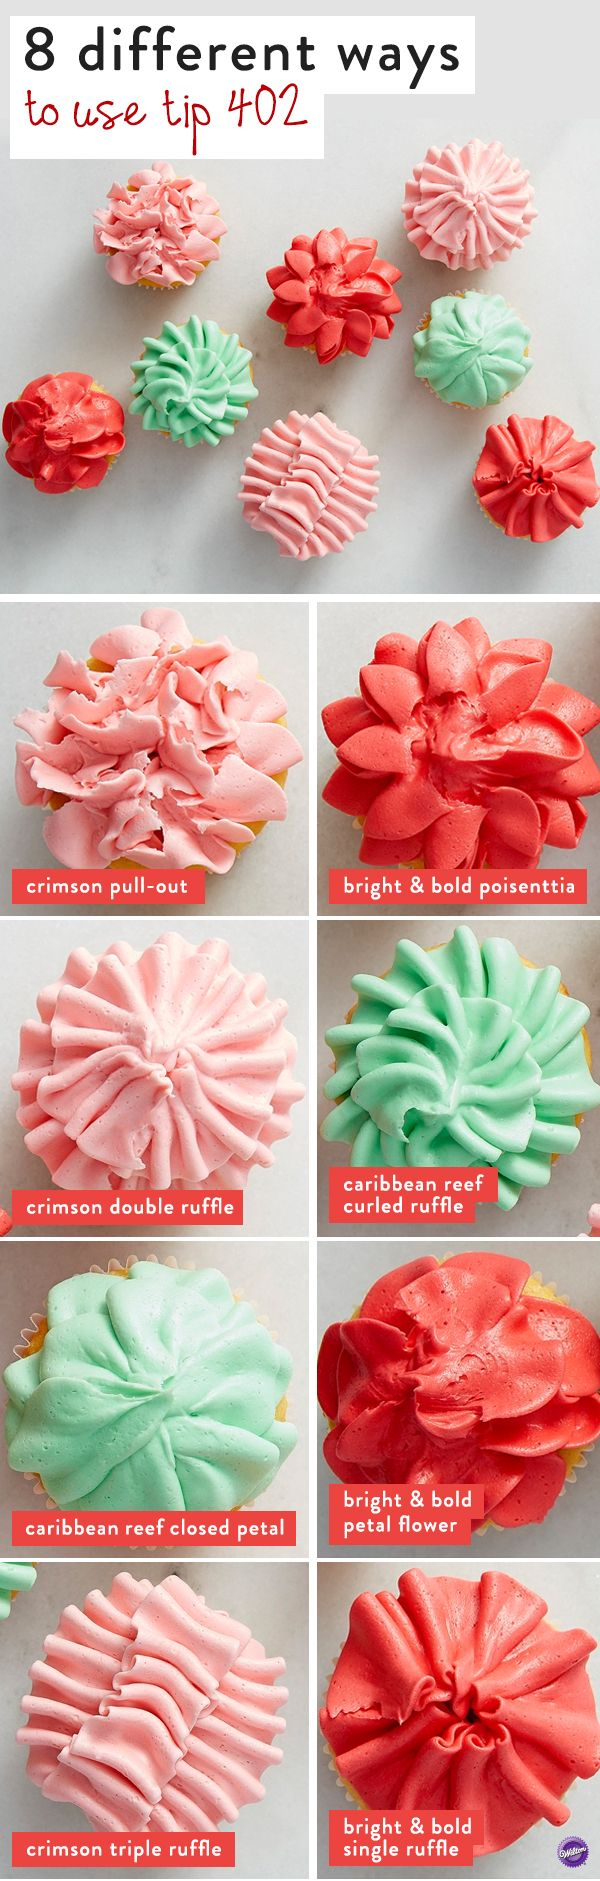 Wilton Cake Decorating Making Flowers : 17 Best ideas about Cupcakes Decorating on Pinterest ...